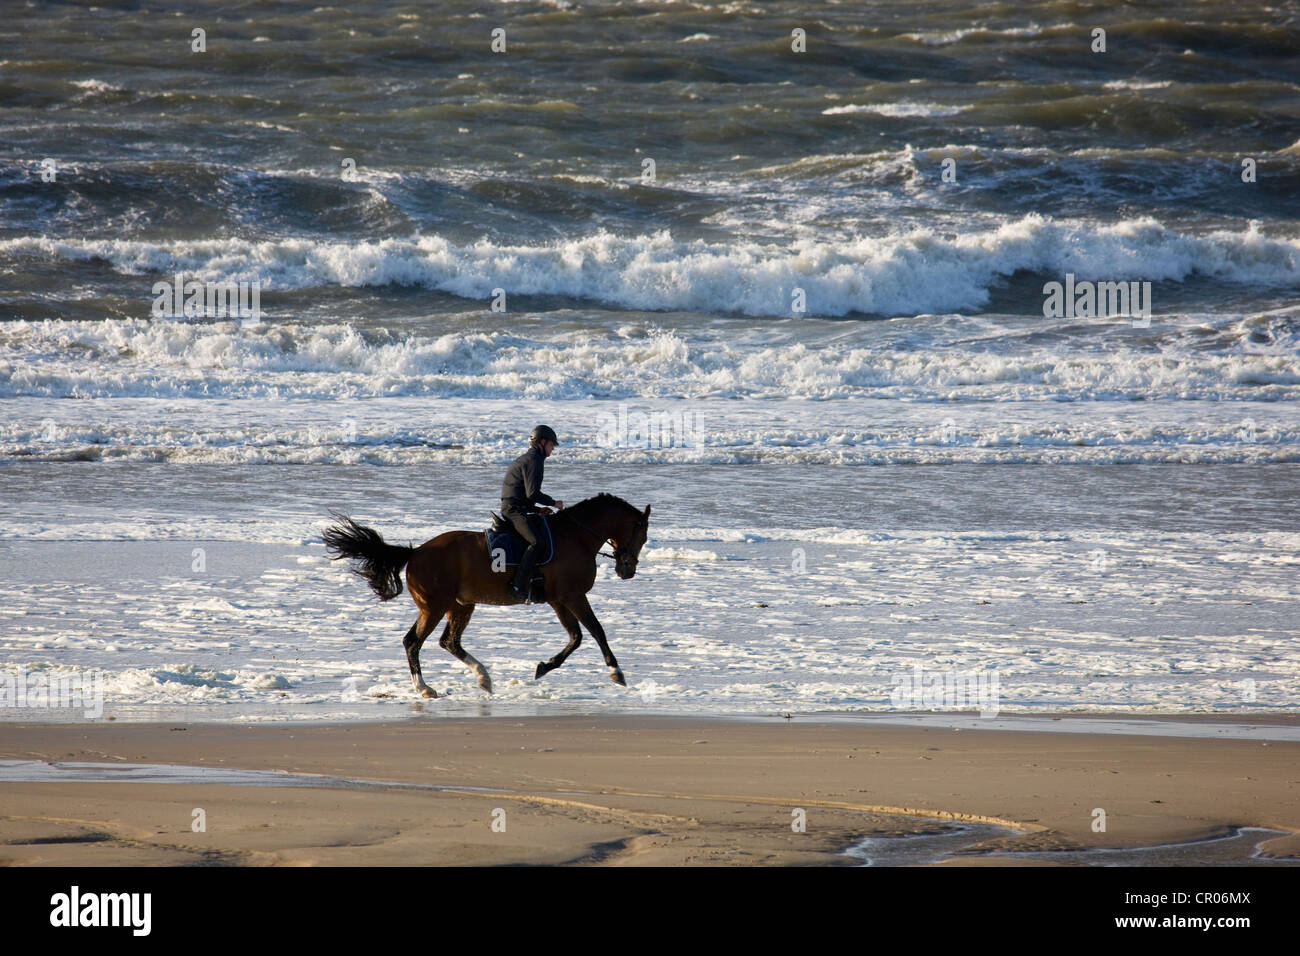 Horseman riding horse in gallop on beach along the North Sea, Belgium - Stock Image